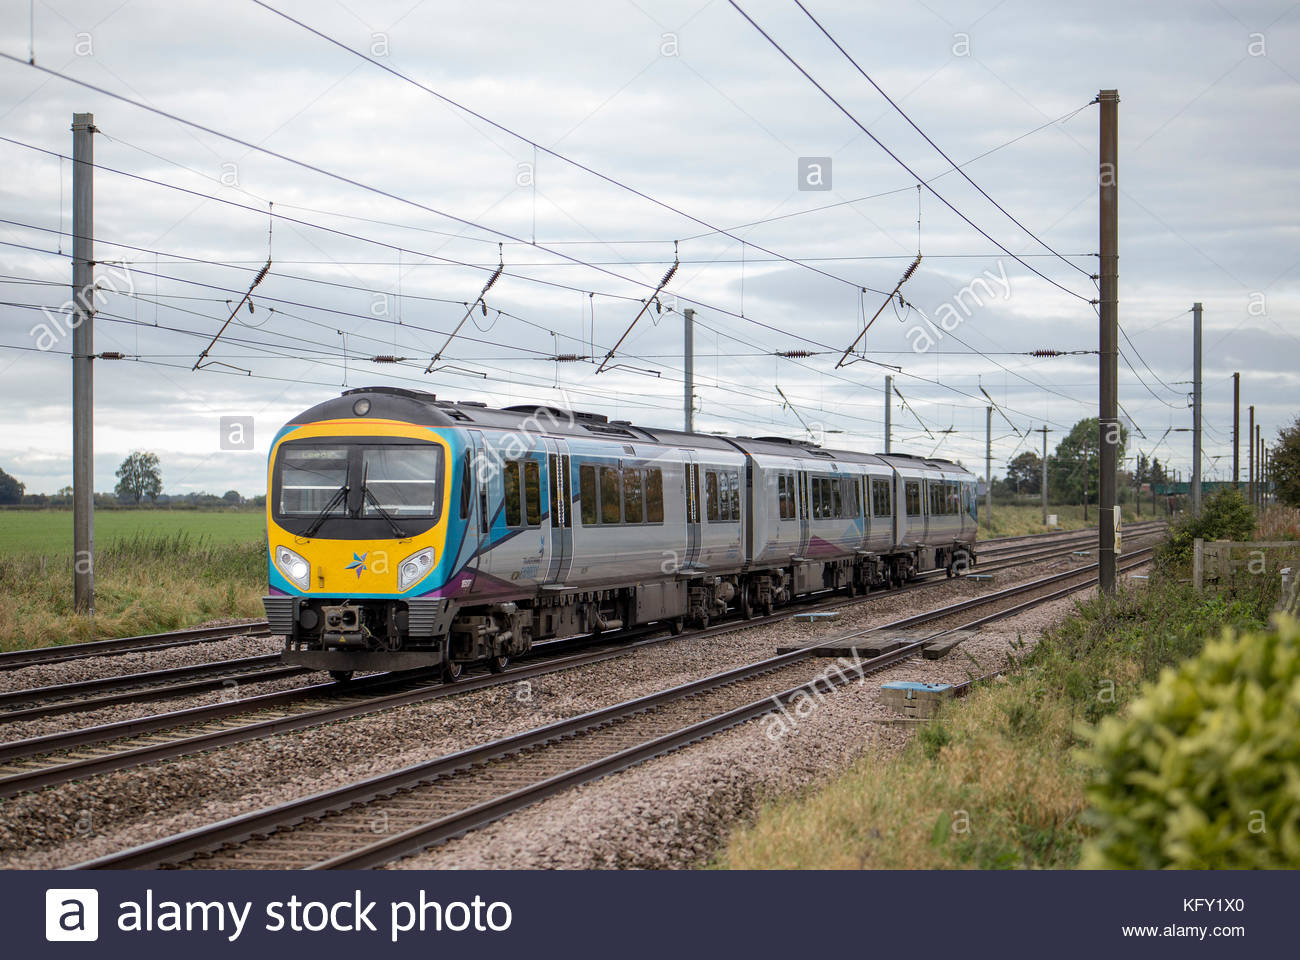 Class 185 TransPennine Express train bound for Newcastle, just north of York, Yorkshire, England Stock Photo